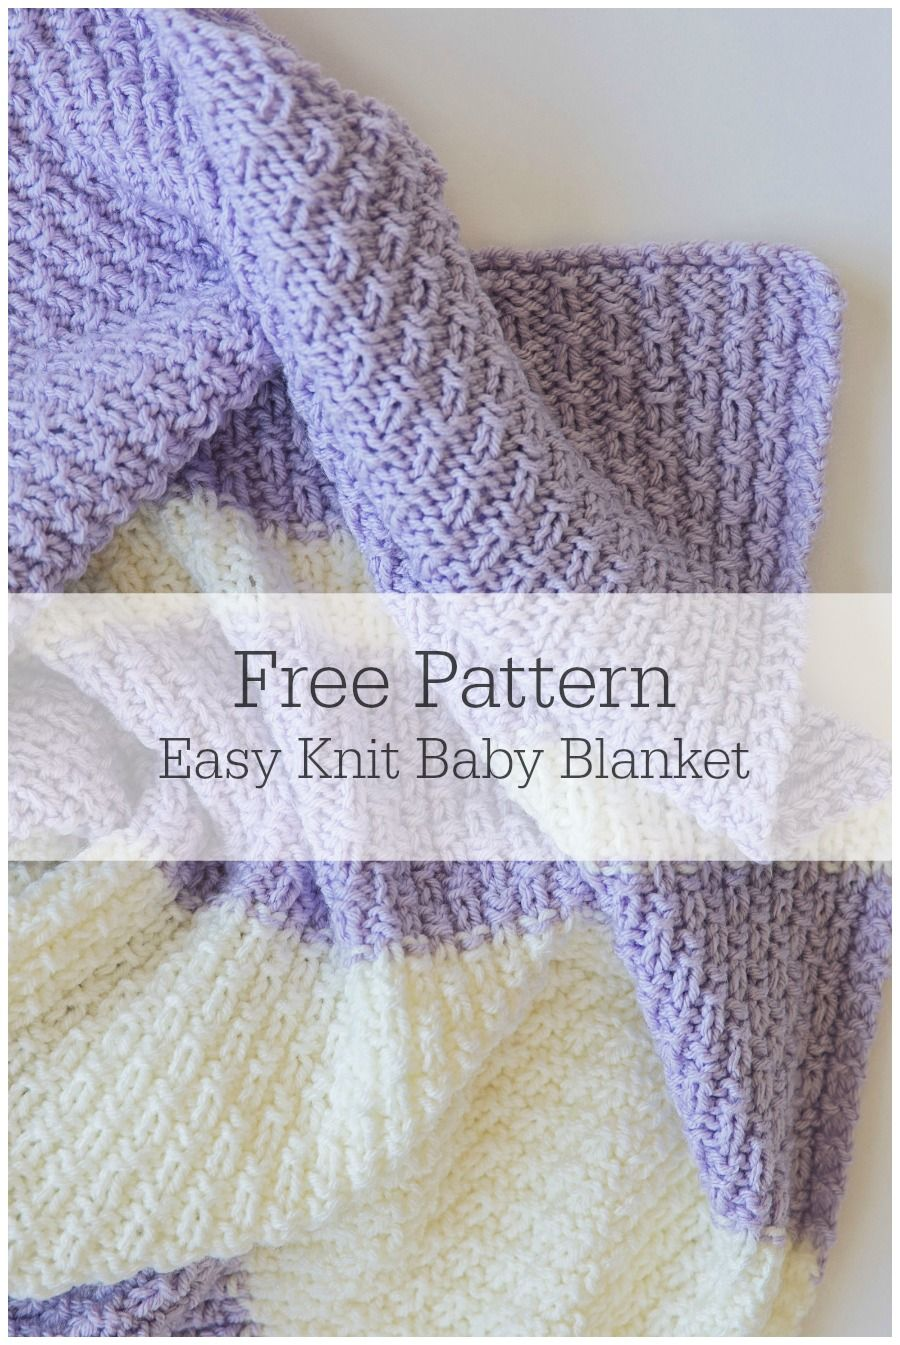 cf7ec47dade6 Easy Knit Baby Blanket Pattern